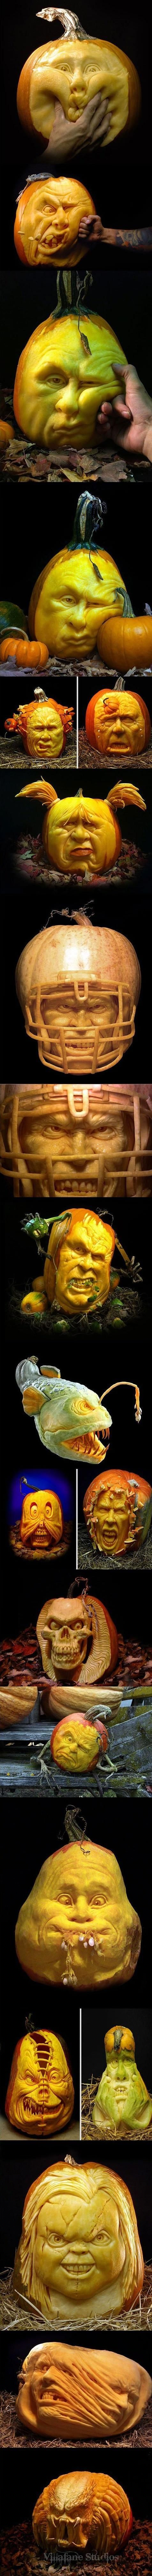 Brilliant Pumpkin Carving - some of these are a little disturbing how life-like they are!